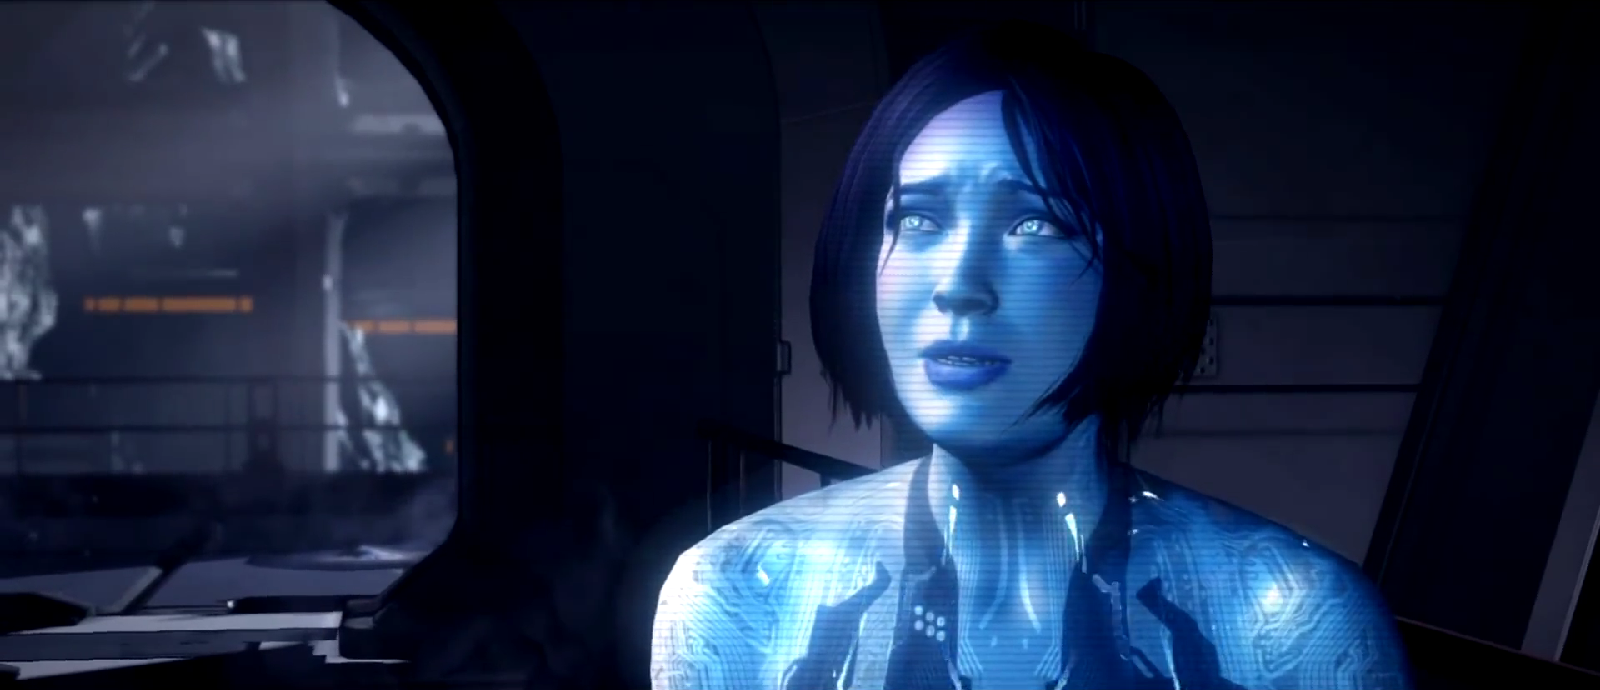 Ai maybe even another cortana model if halsey lets them